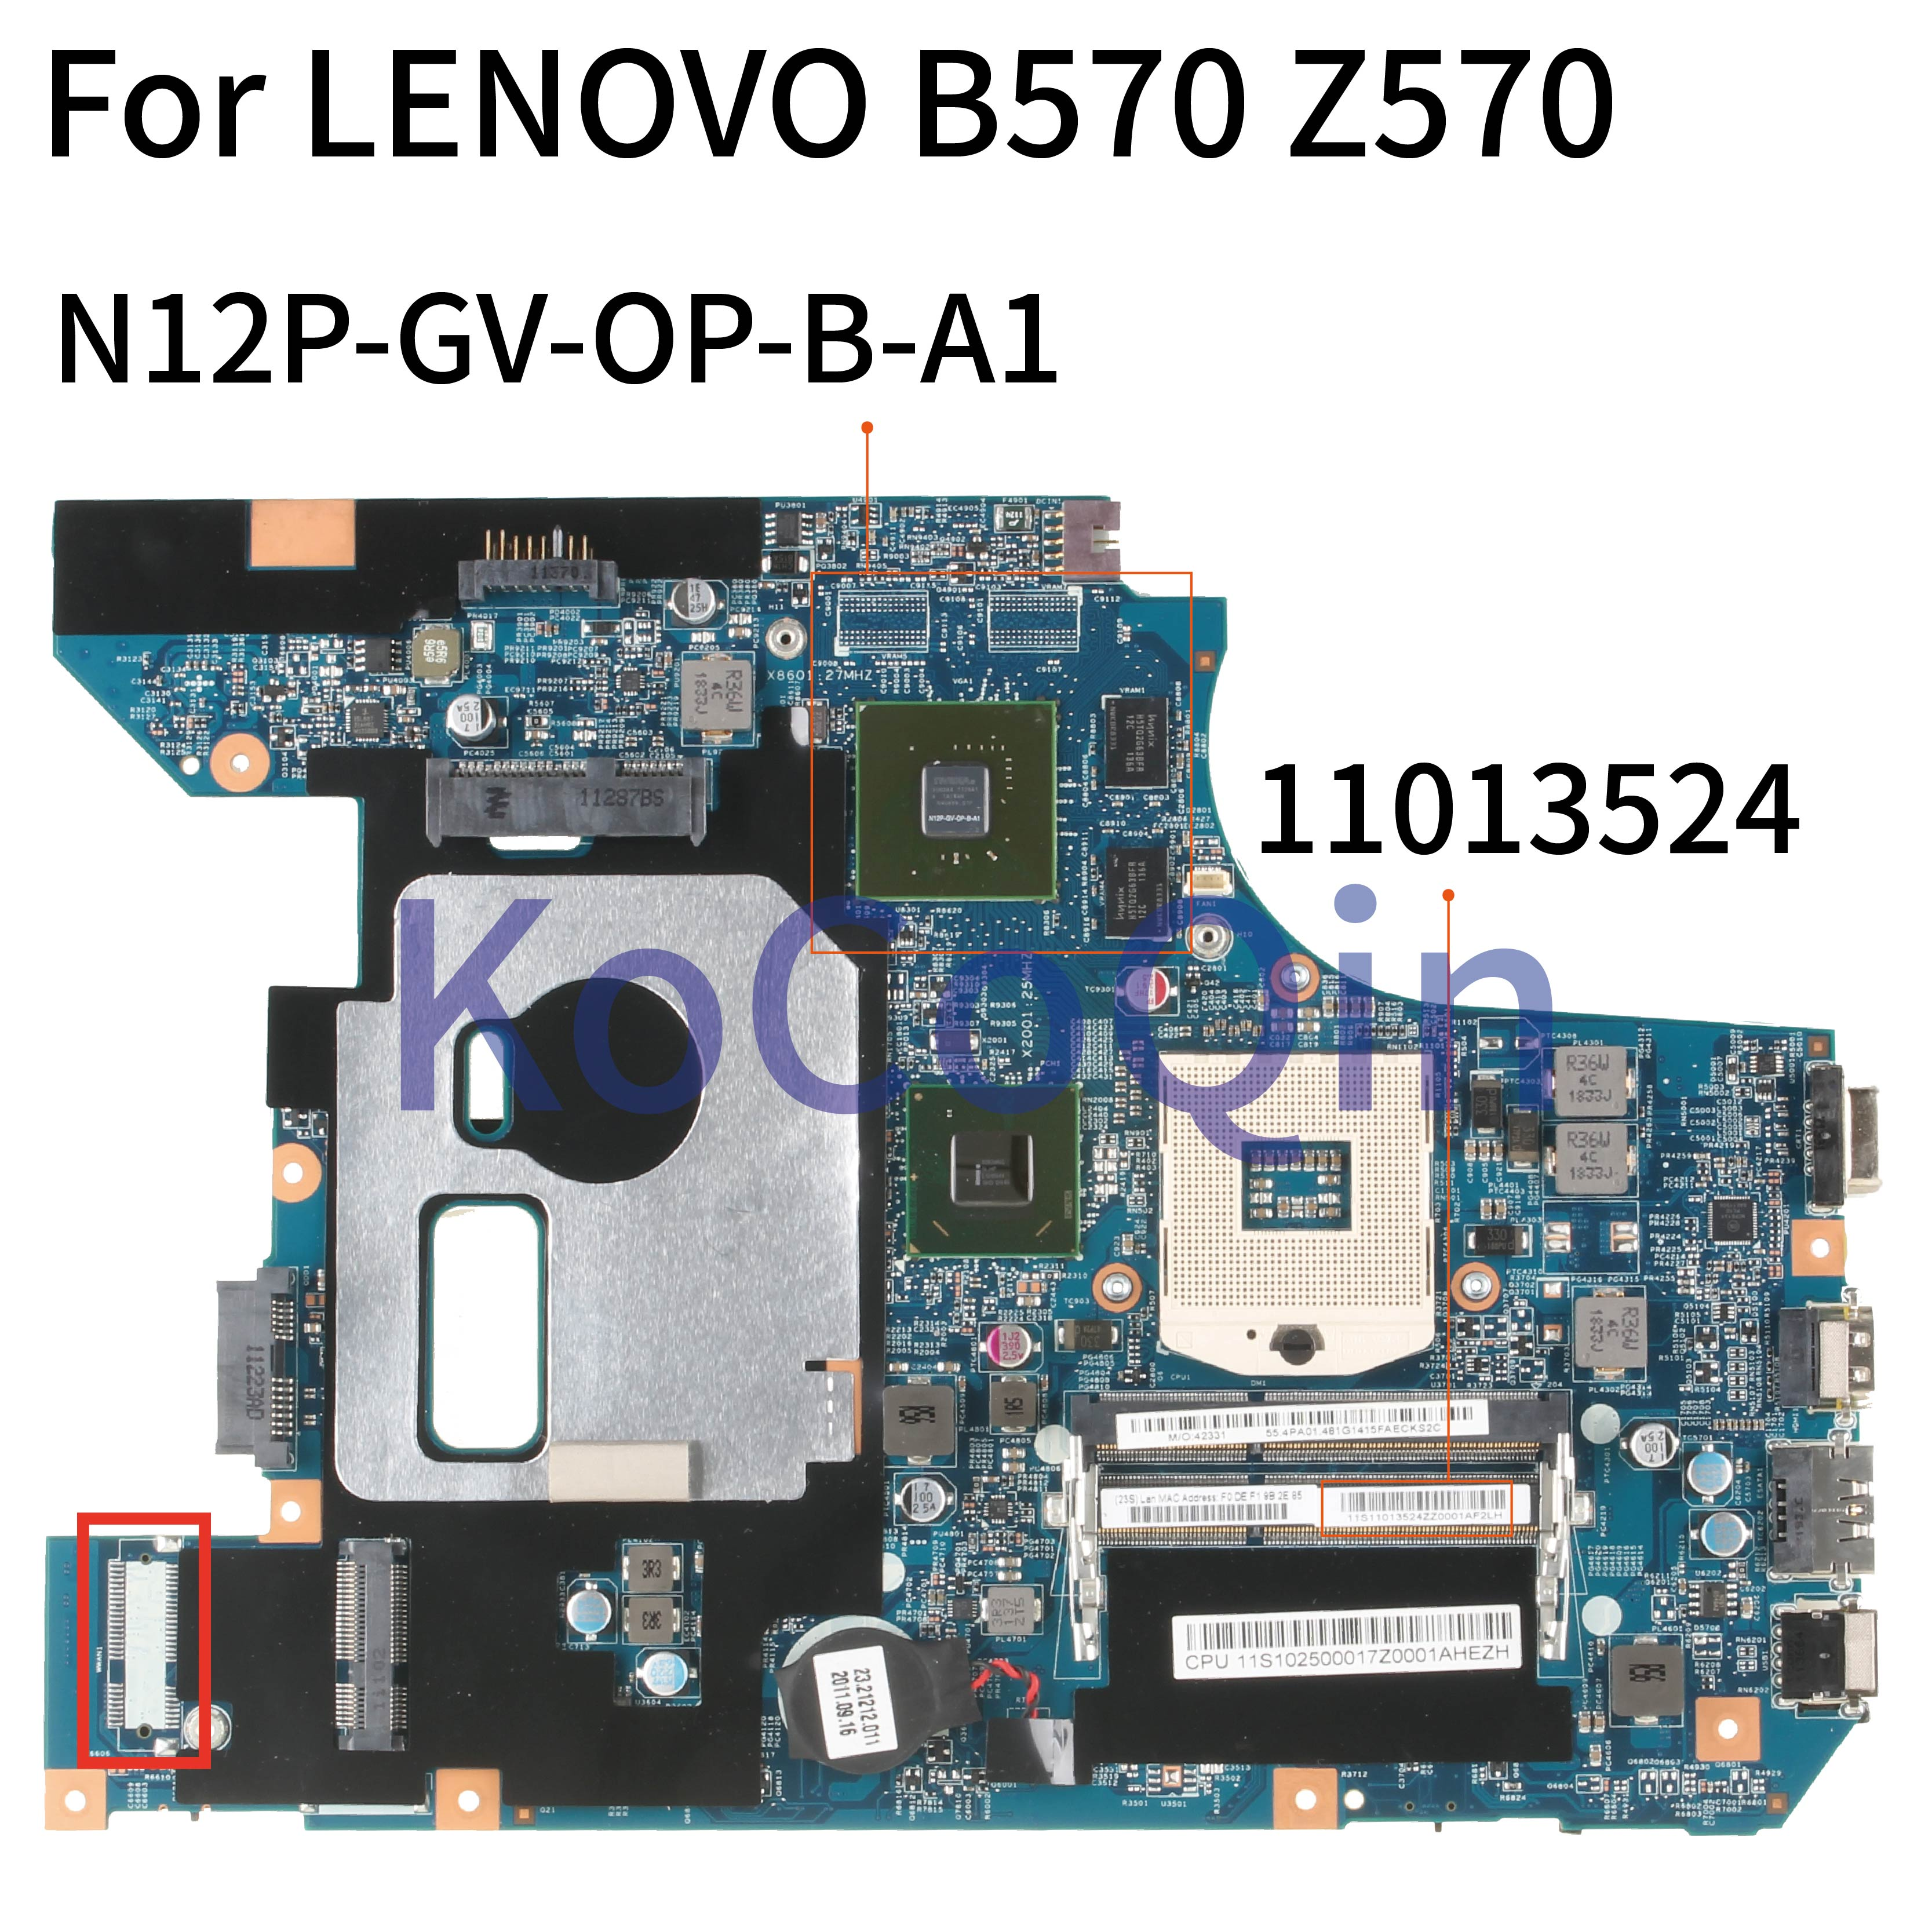 KoCoQin Laptop <font><b>motherboard</b></font> For <font><b>LENOVO</b></font> B570 Z570 HM65 Mainboard 10290-2 48.4PA01.021 11S11013524ZZ N12P-GV-OP-B-A1 image